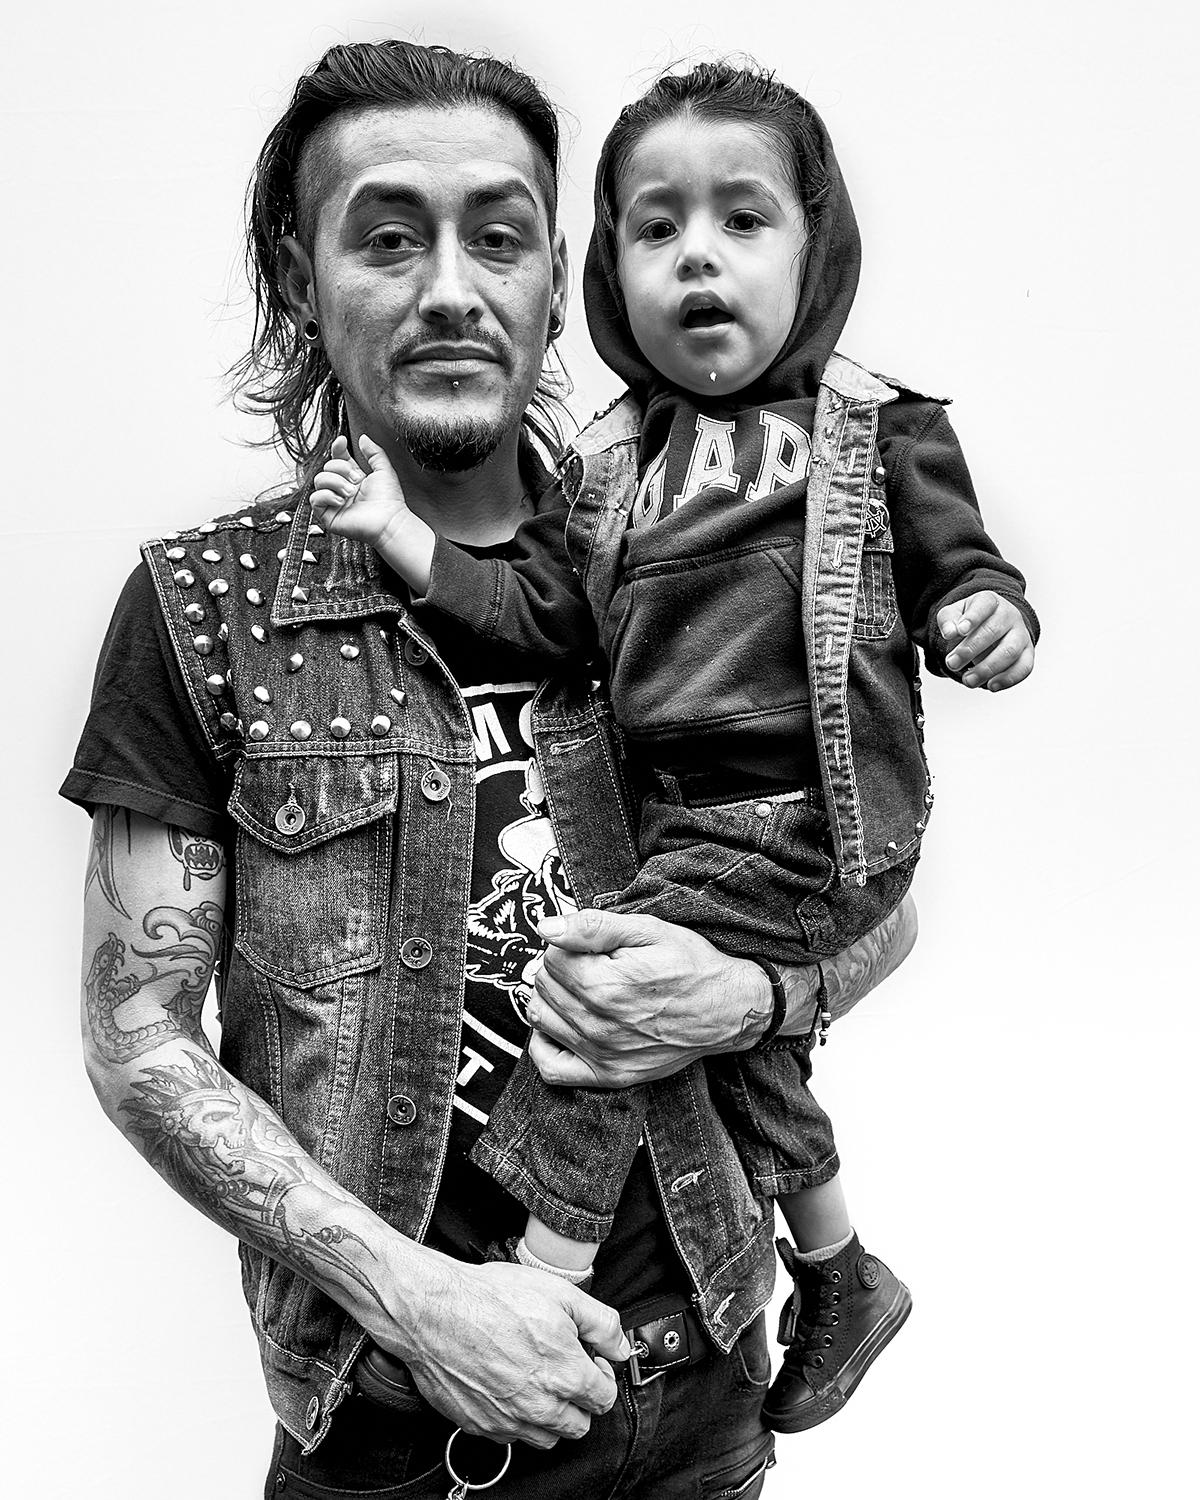 Portraits of Punks by David Burlacu